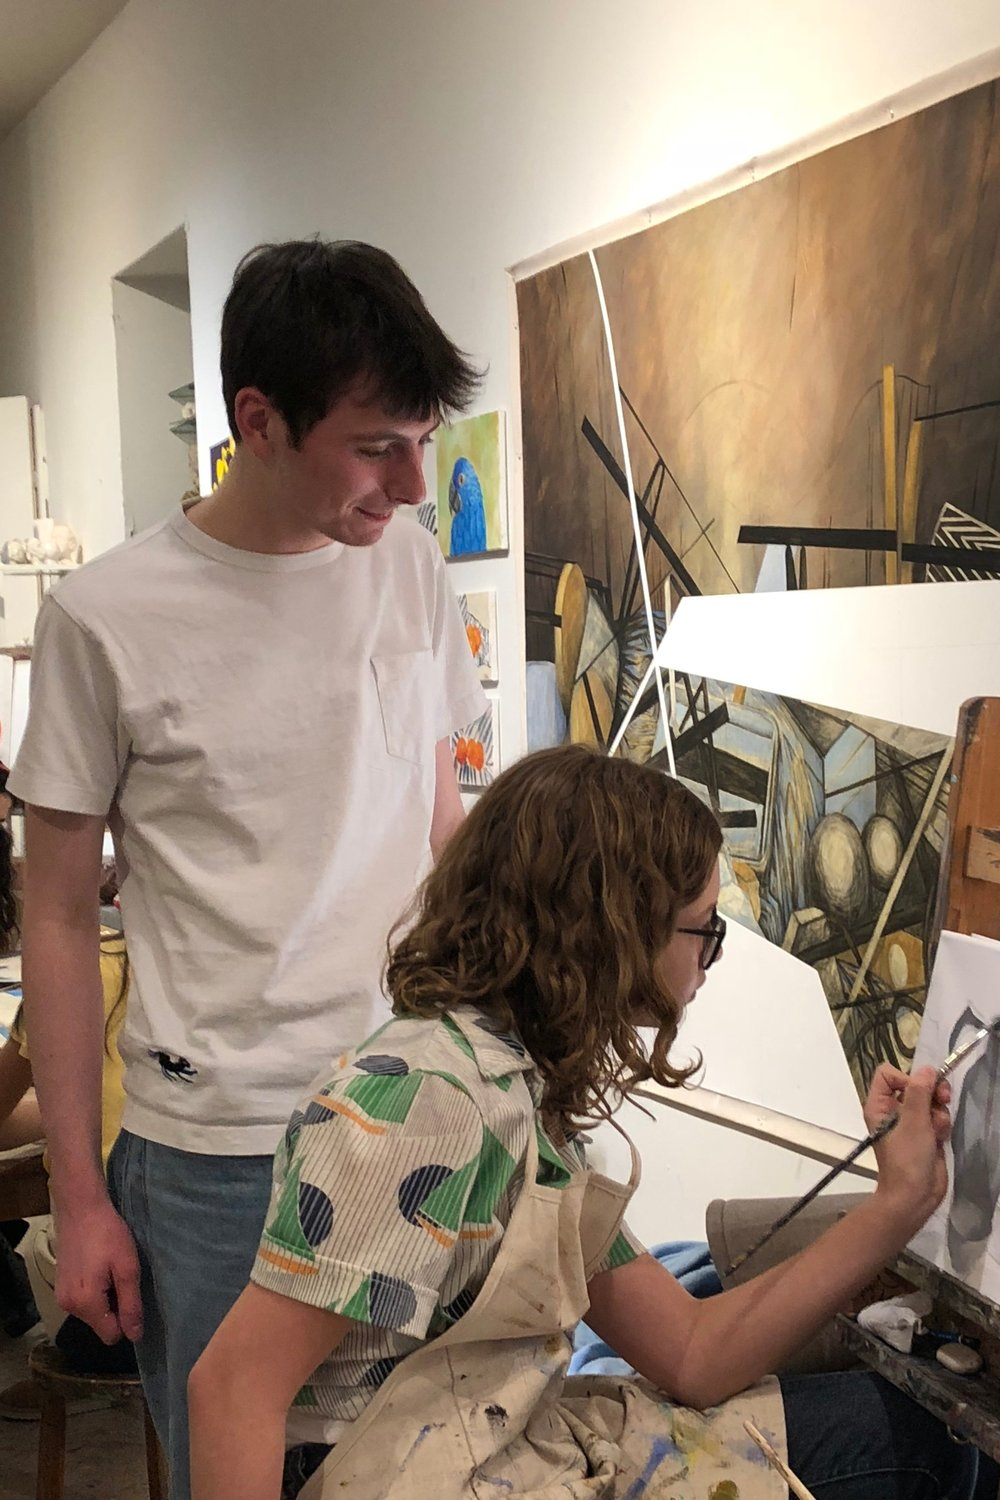 - Bennet Wood is a New York native and Wet Paint Art Studio alum. He has been a teacher assistant at WPA for three years. Bennet is an aspiring artist and will be attending college next year.